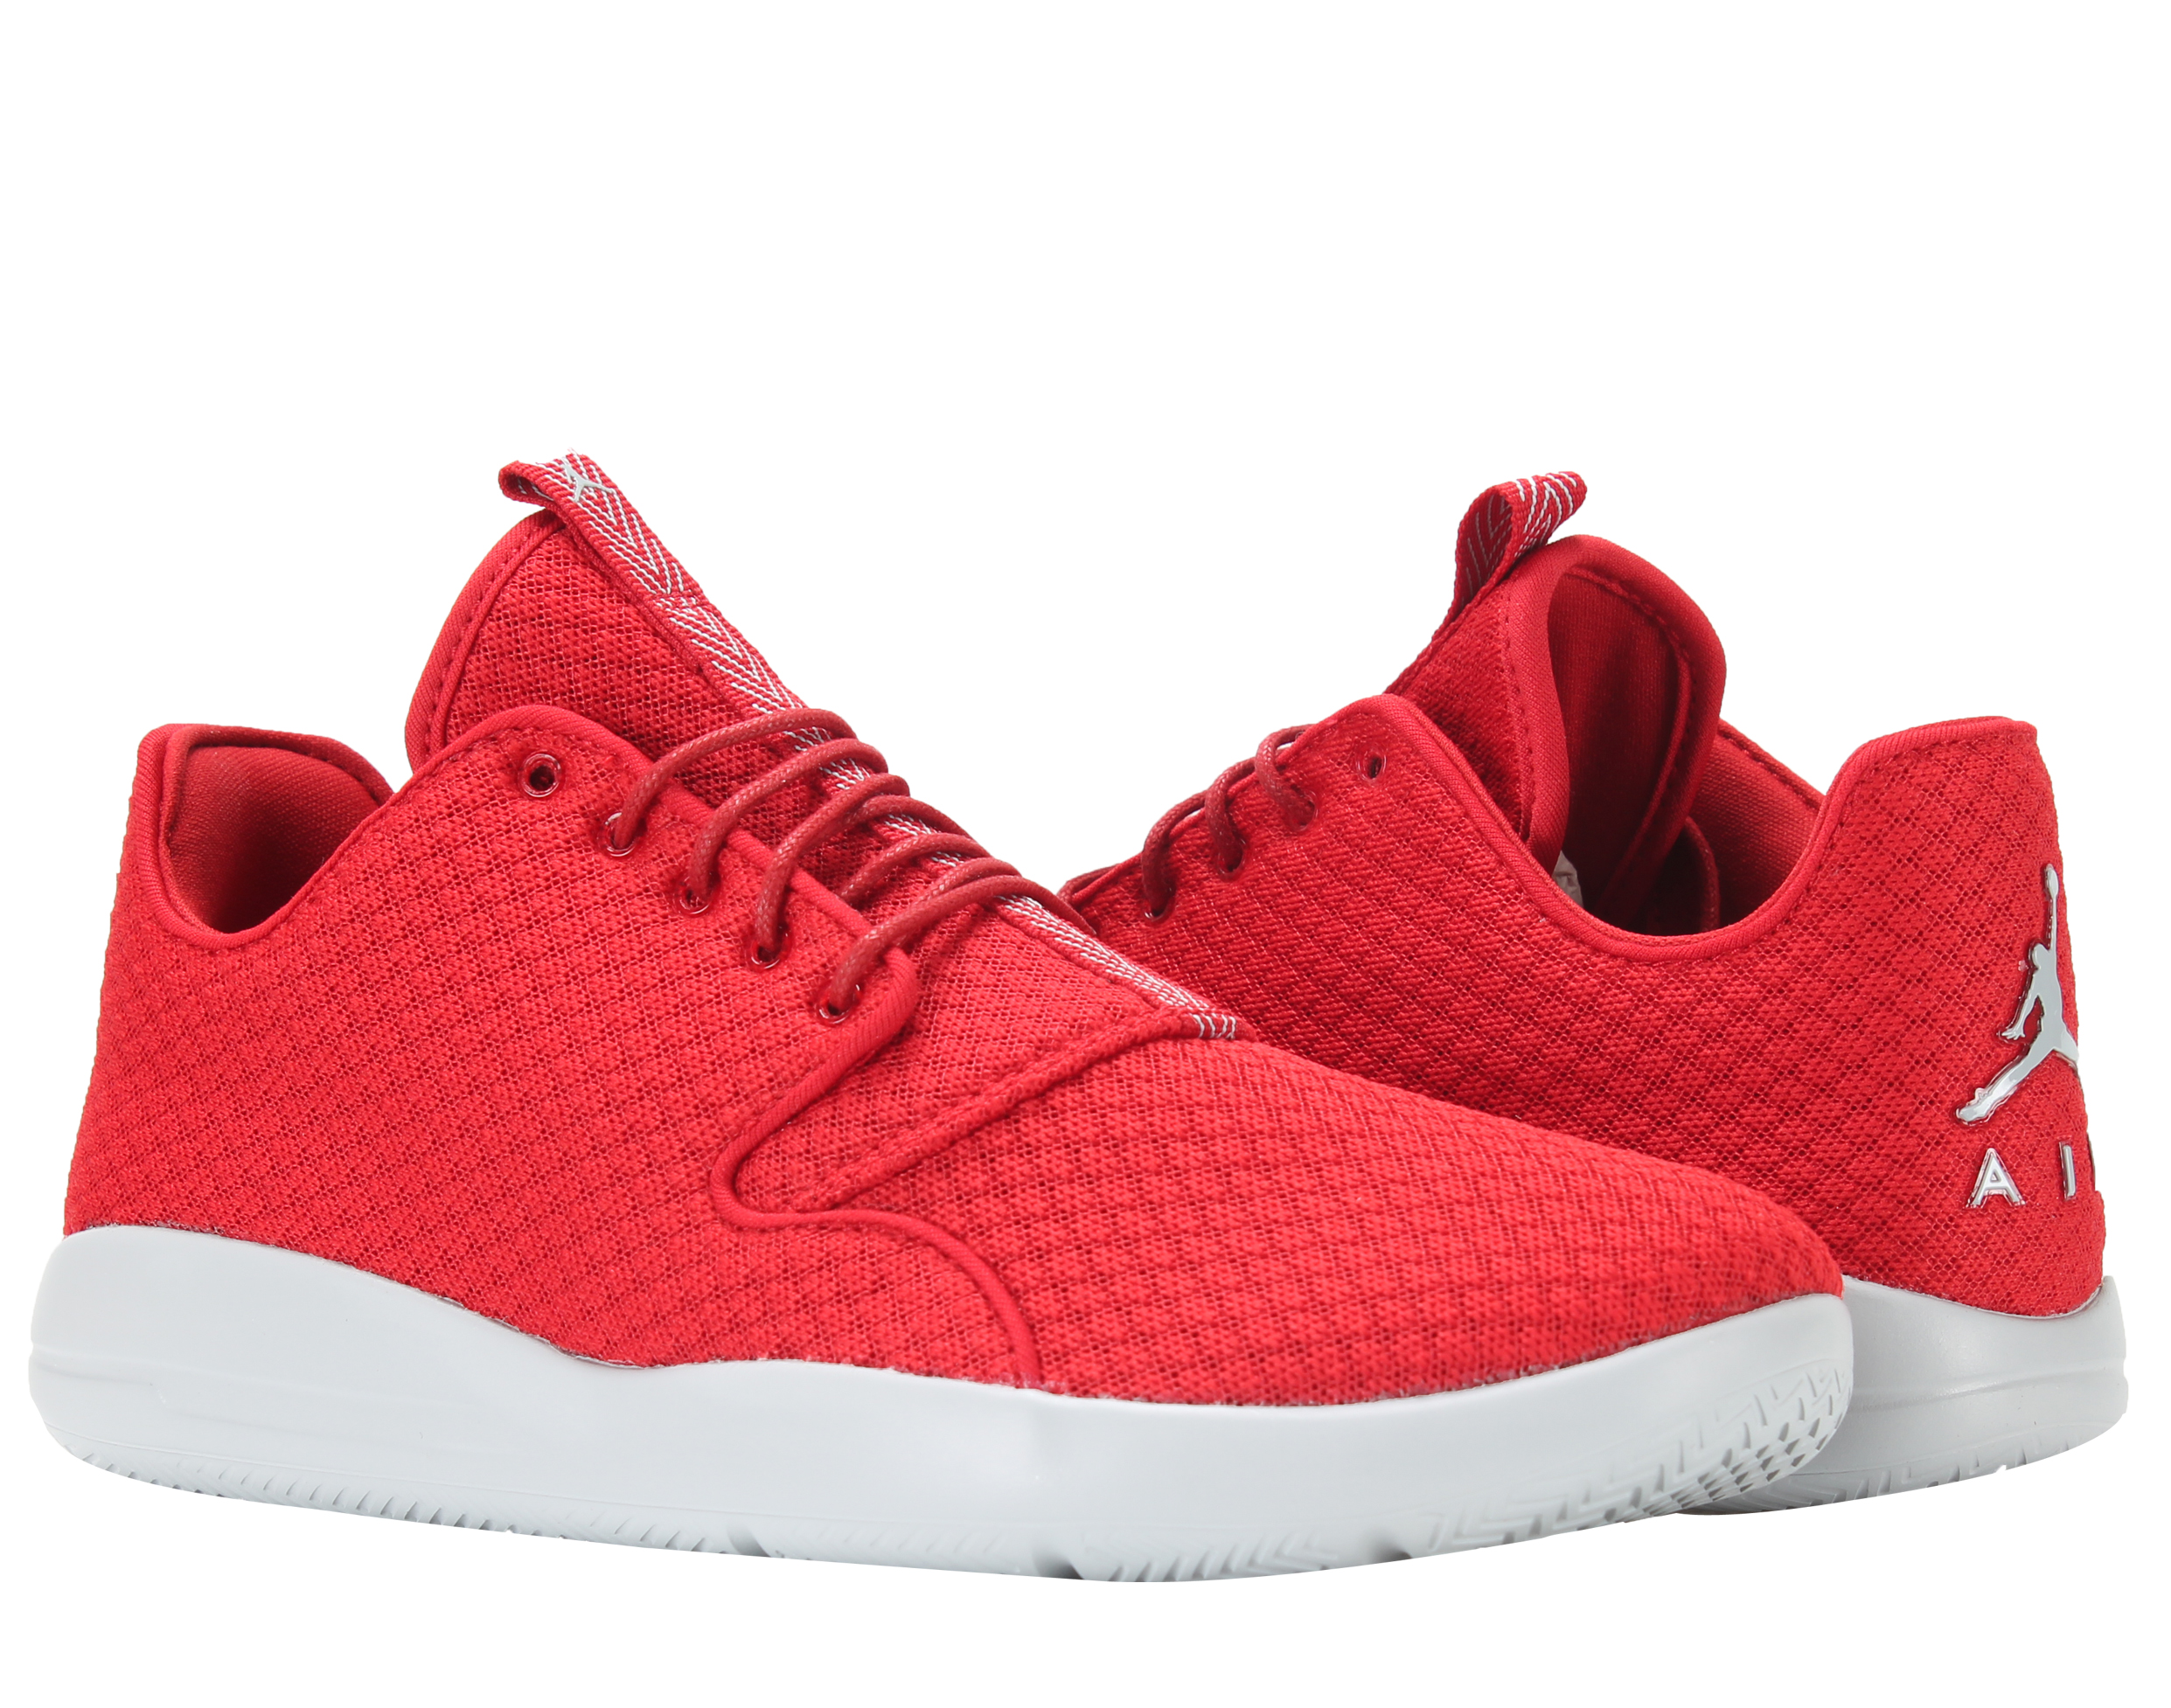 Nike Air Jordan Eclipse Gym Red/Wolf Grey Men's Shoes 724010-614 - Walmart.com